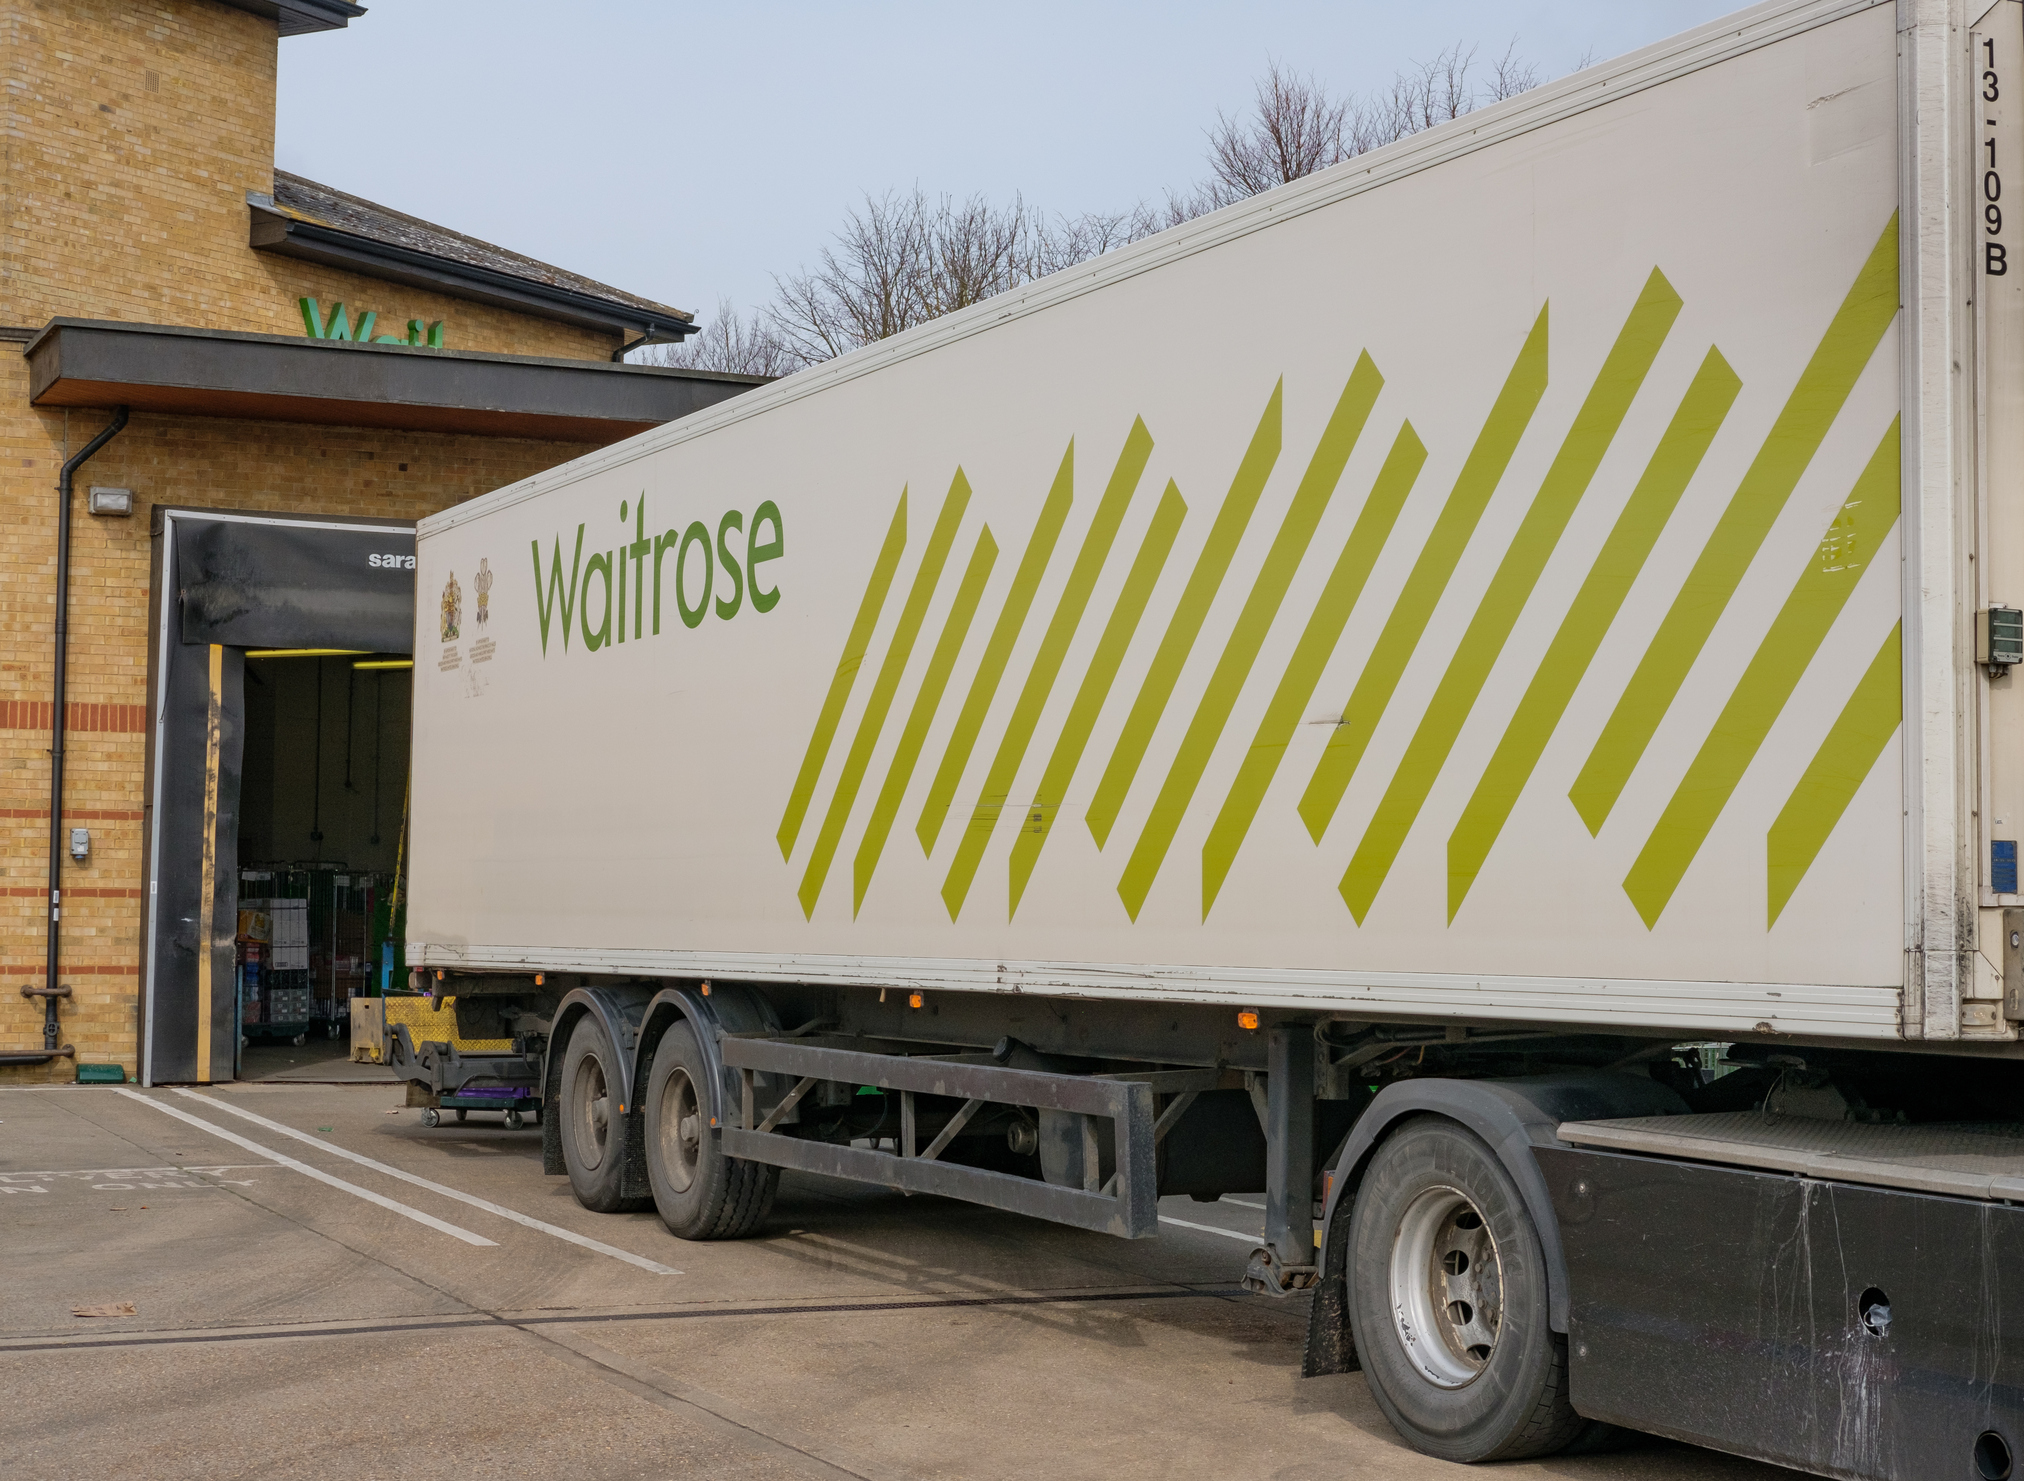 Voiteq voice at waitrose ndc in magna park - Waitrose head office telephone number ...